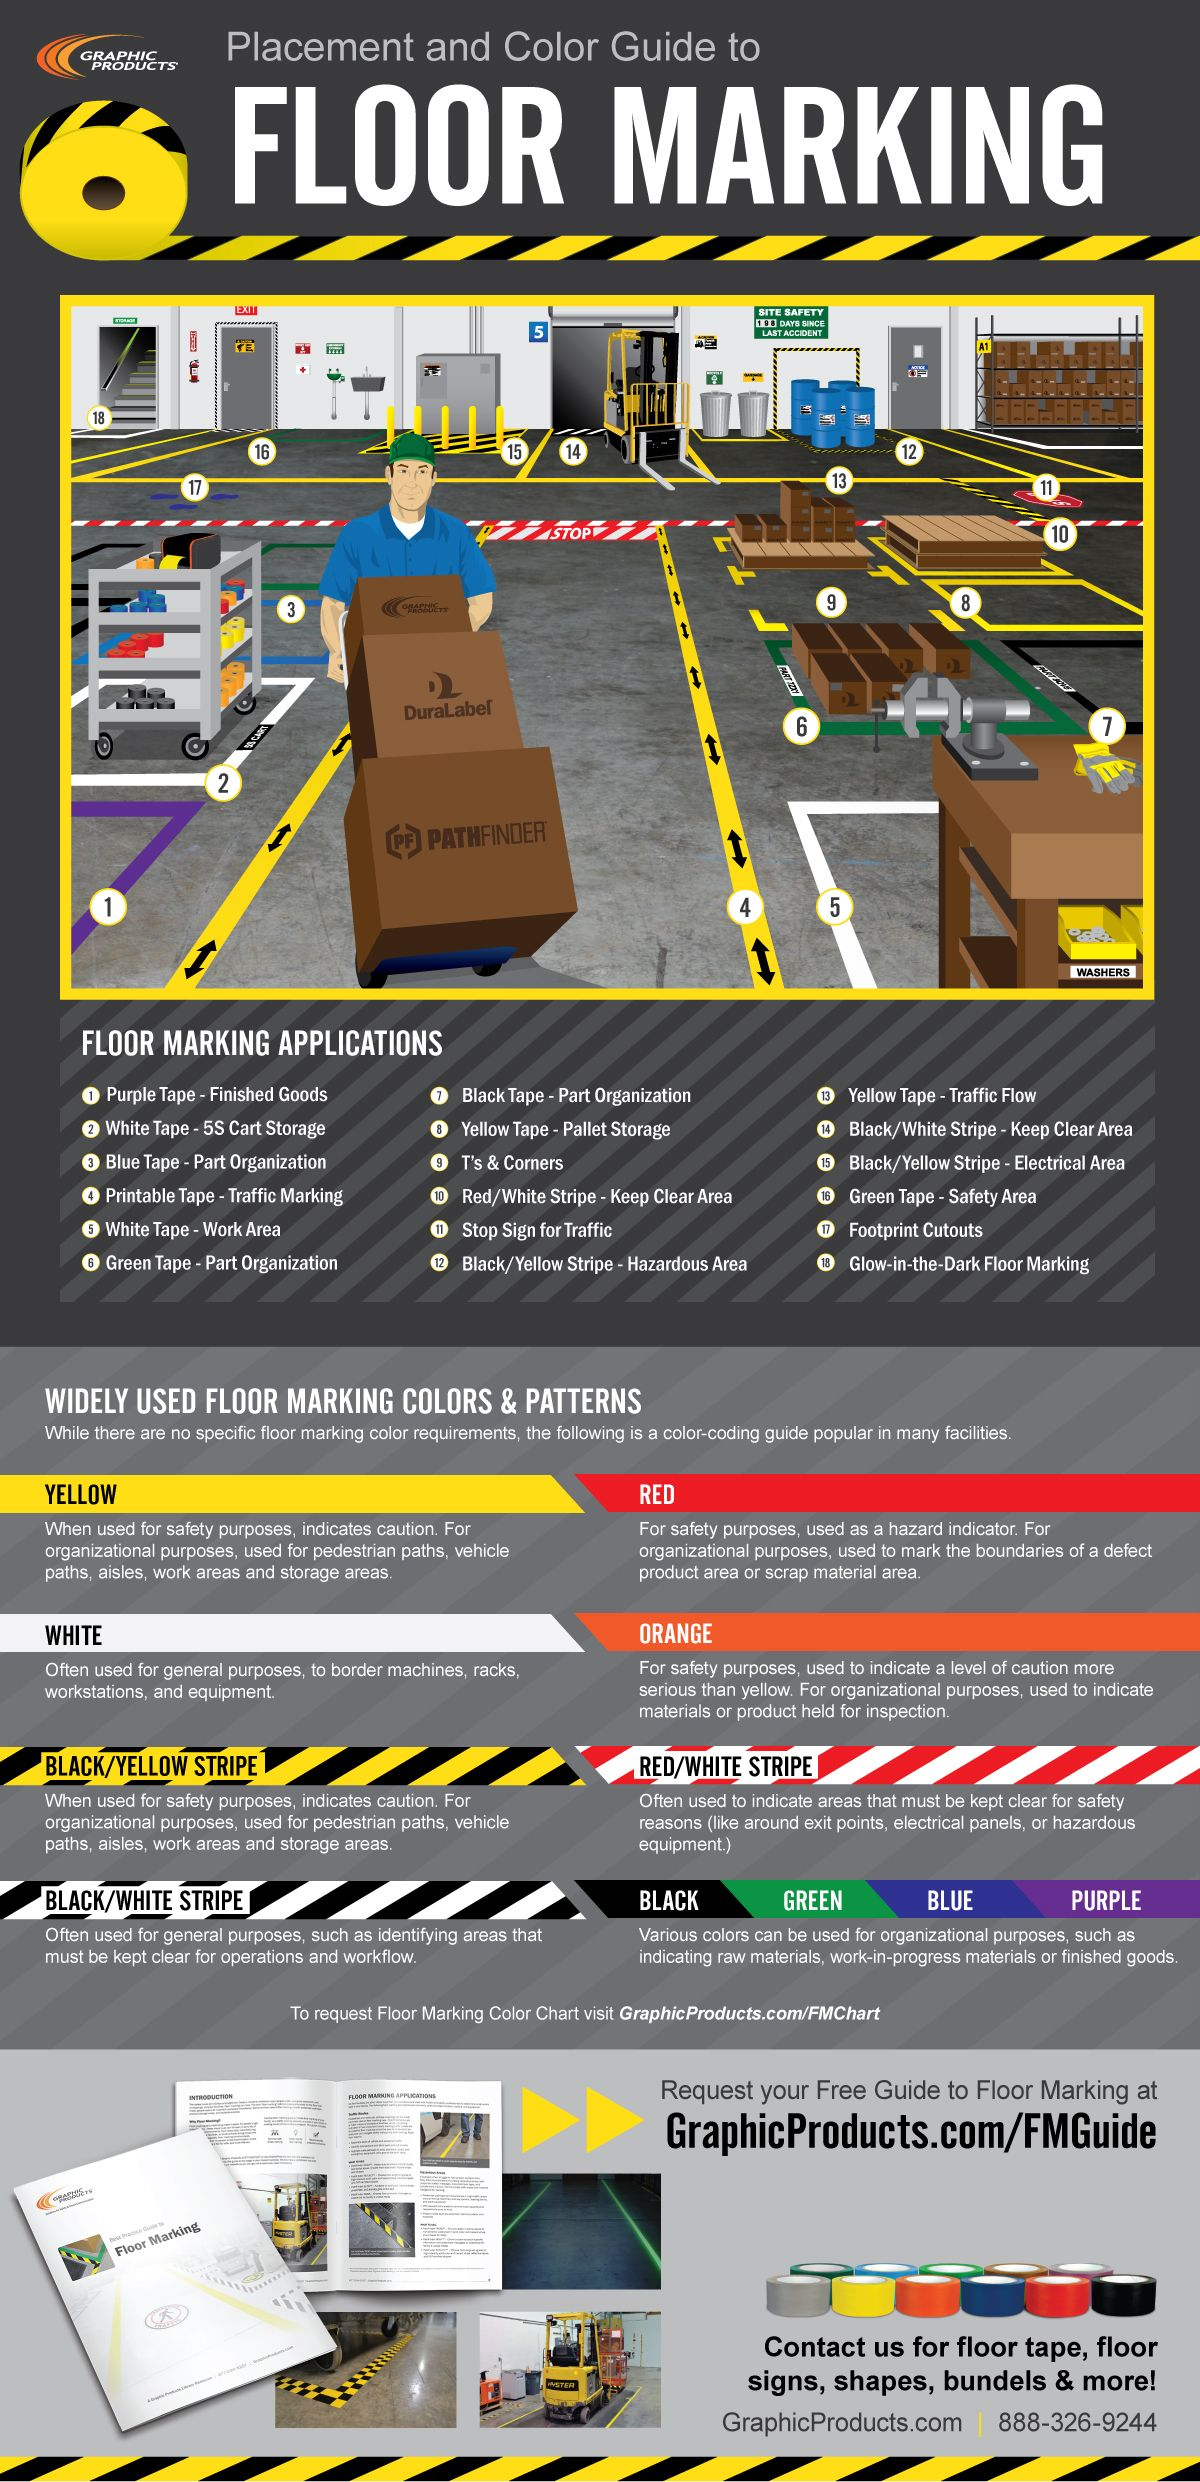 [Infographic] Floor Marking Placement Graphic Products